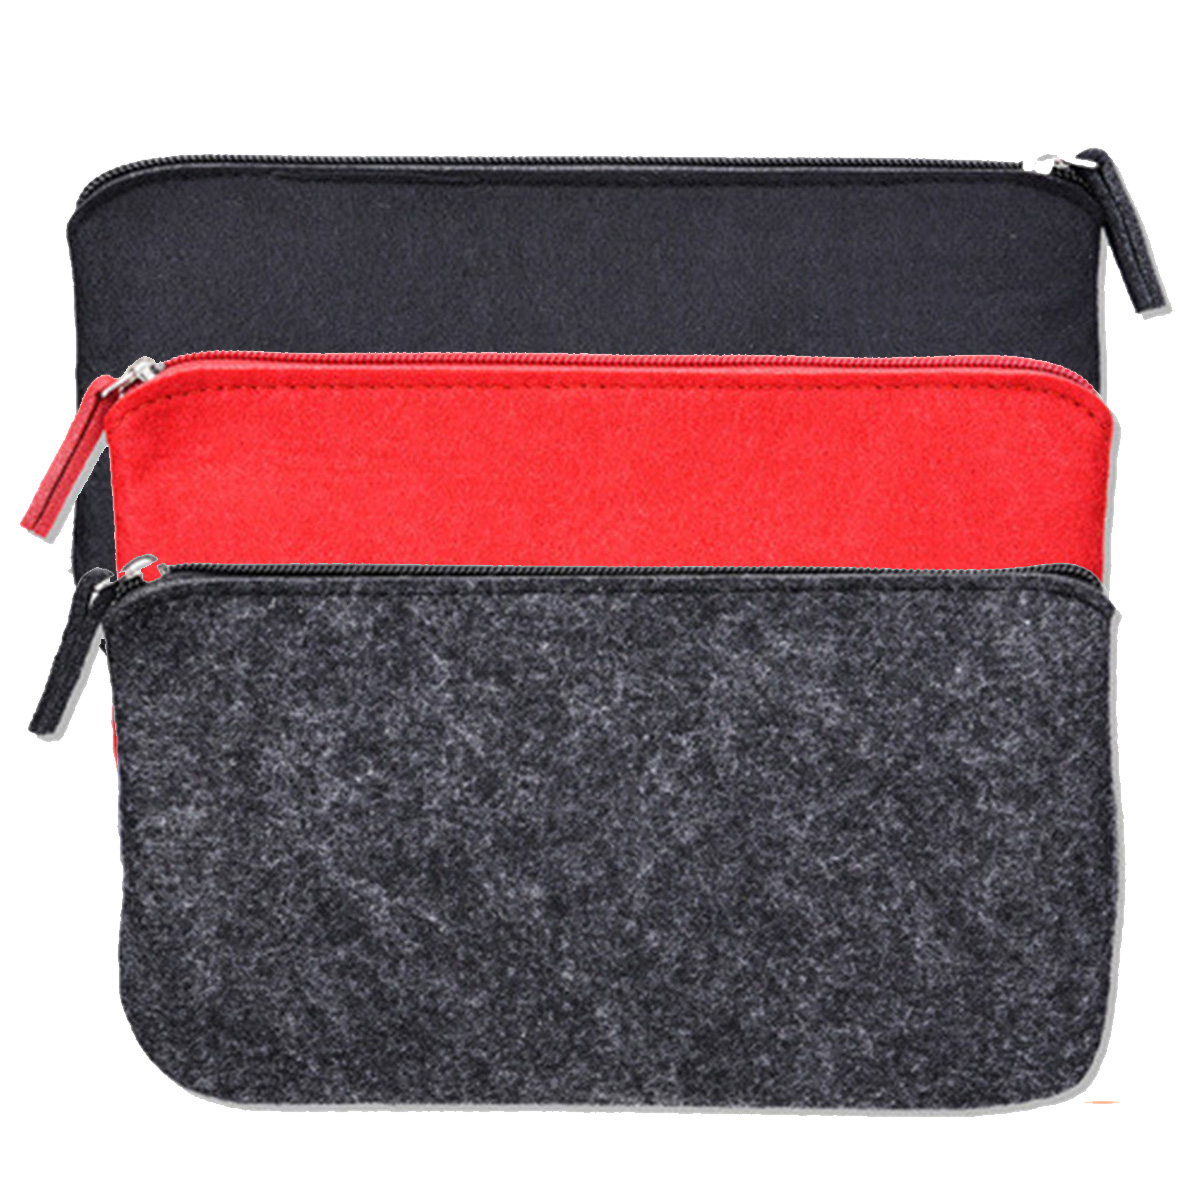 Felt Pencil Cases Cosmetic Makeup Storage Toiletry Bags Pouch Zipper Pen Bags Pouch For Stationary   Coin Small Items Storage